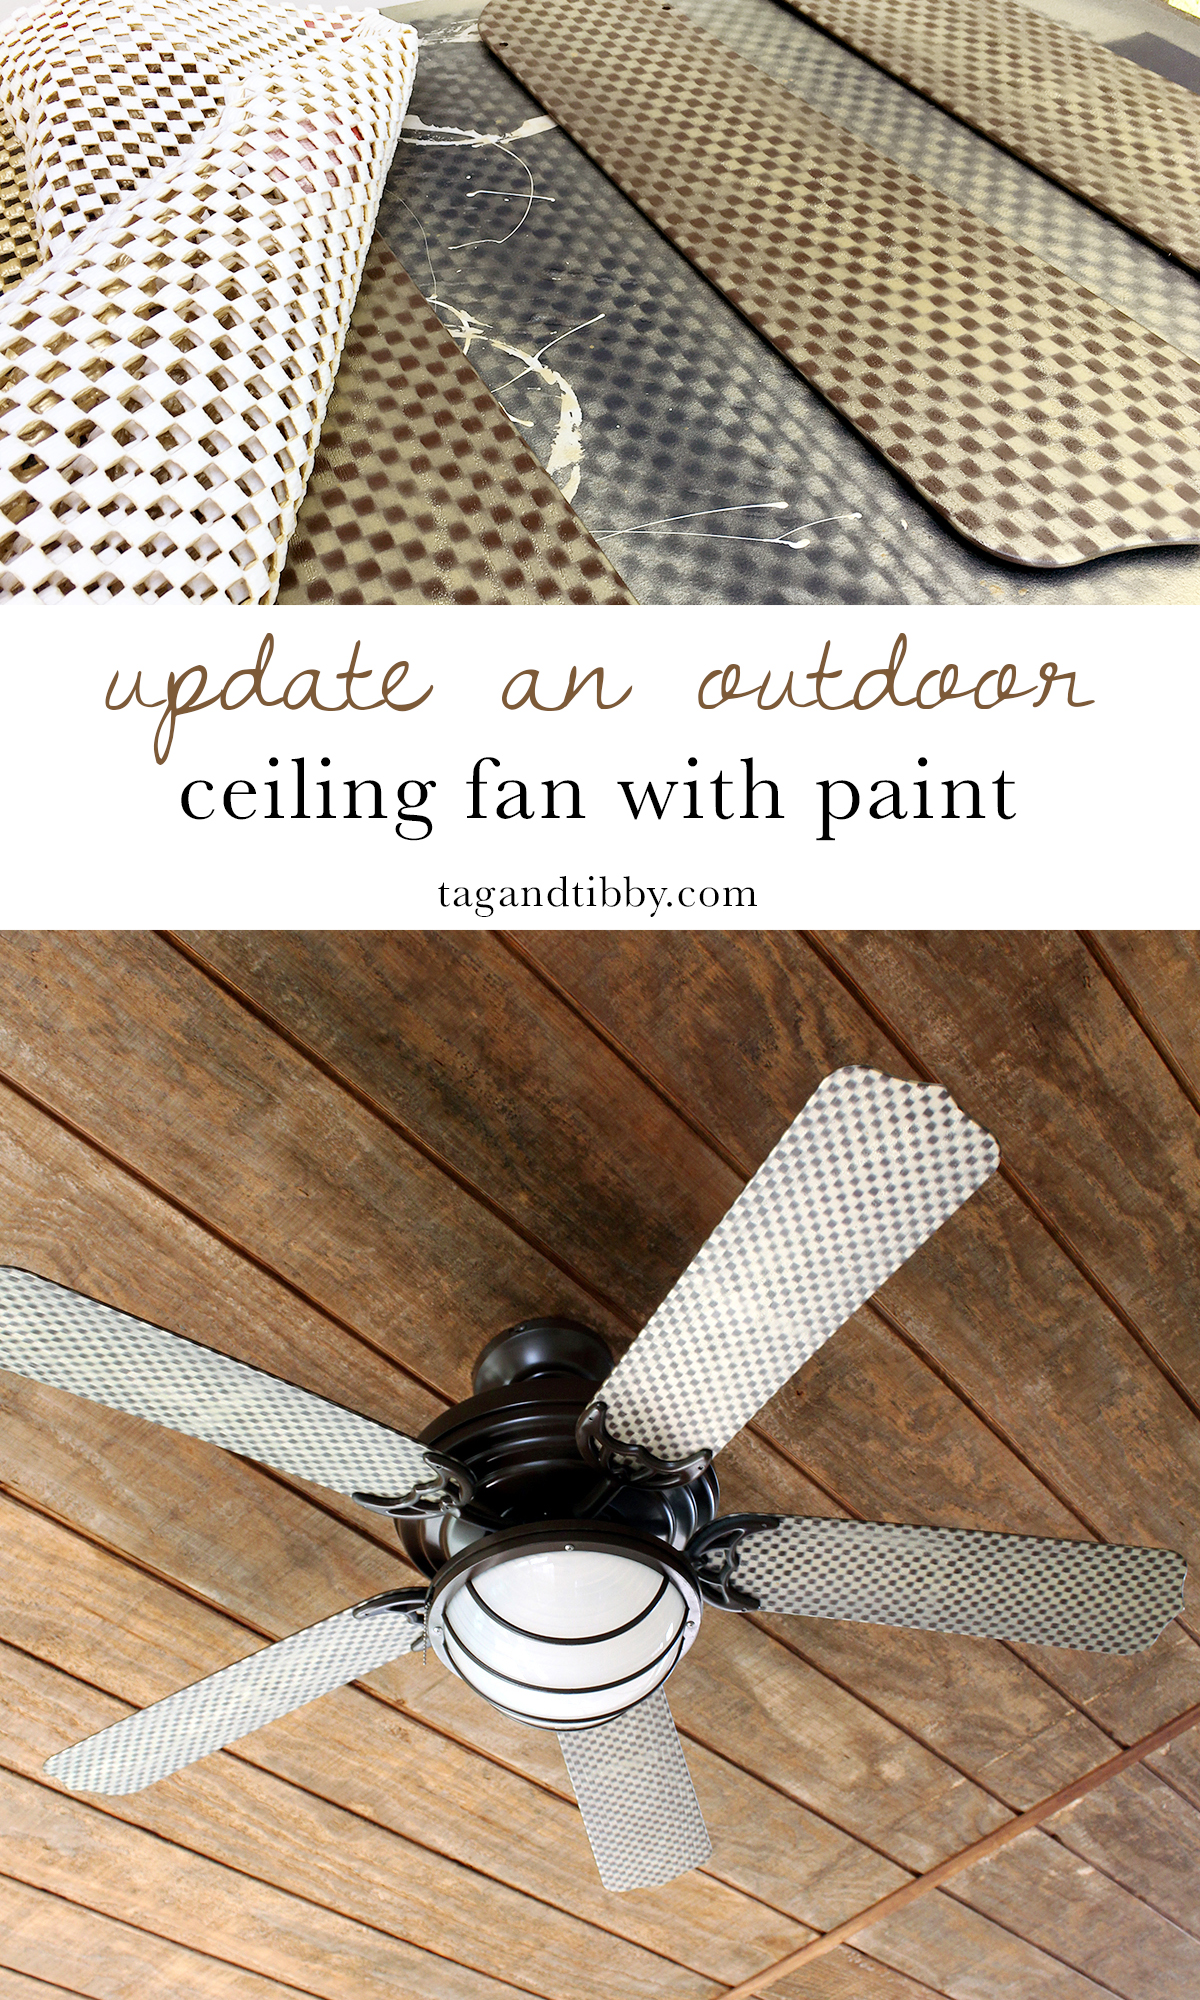 learn how to paint a ceiling fan for under $25! #upcycle #DIY #ceilingfan #spraypaint